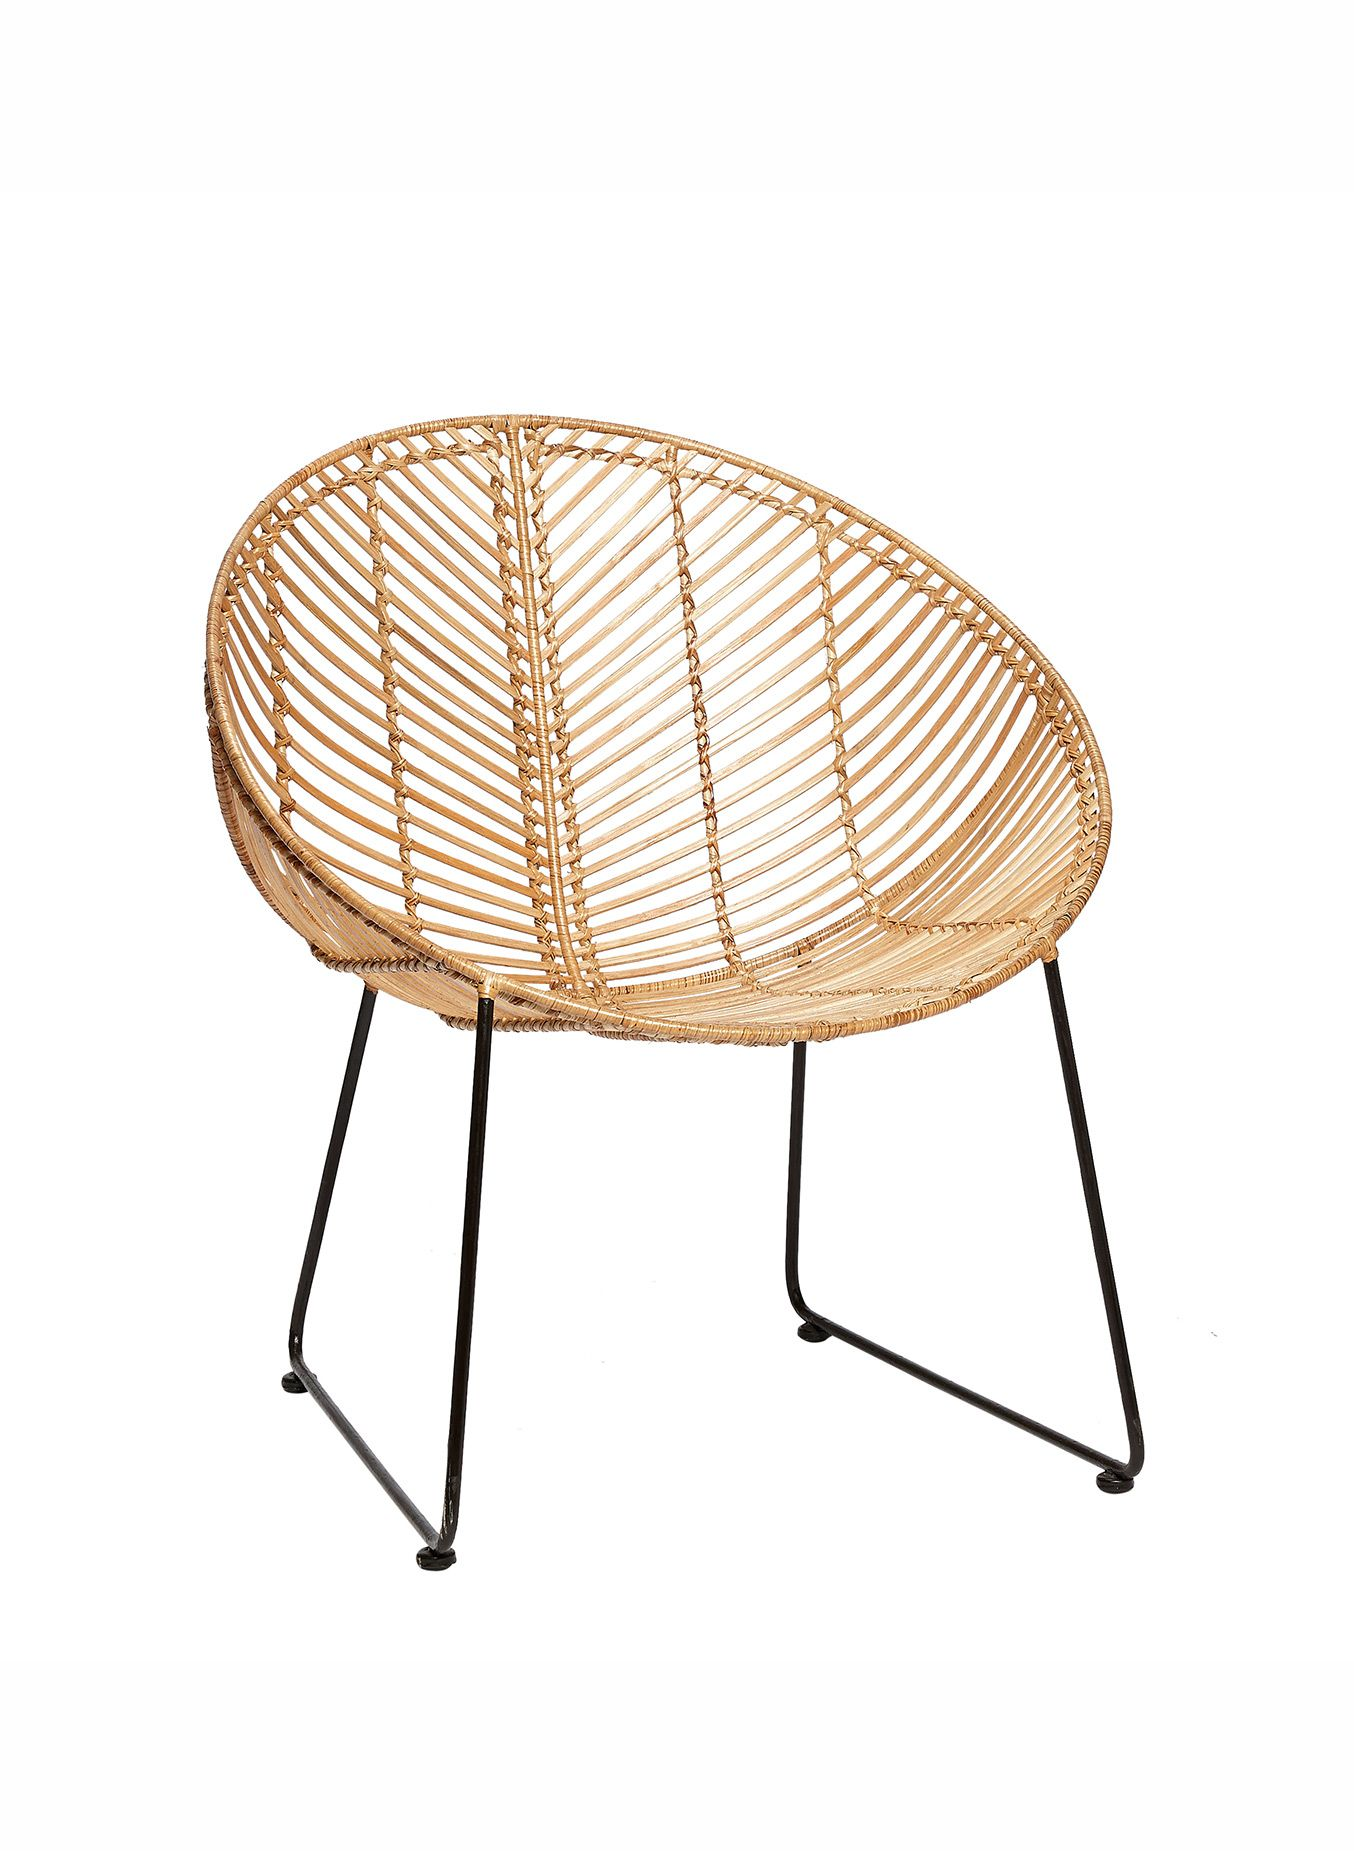 Round Rattan Chair In Natural Colour From Hubsch Interior.